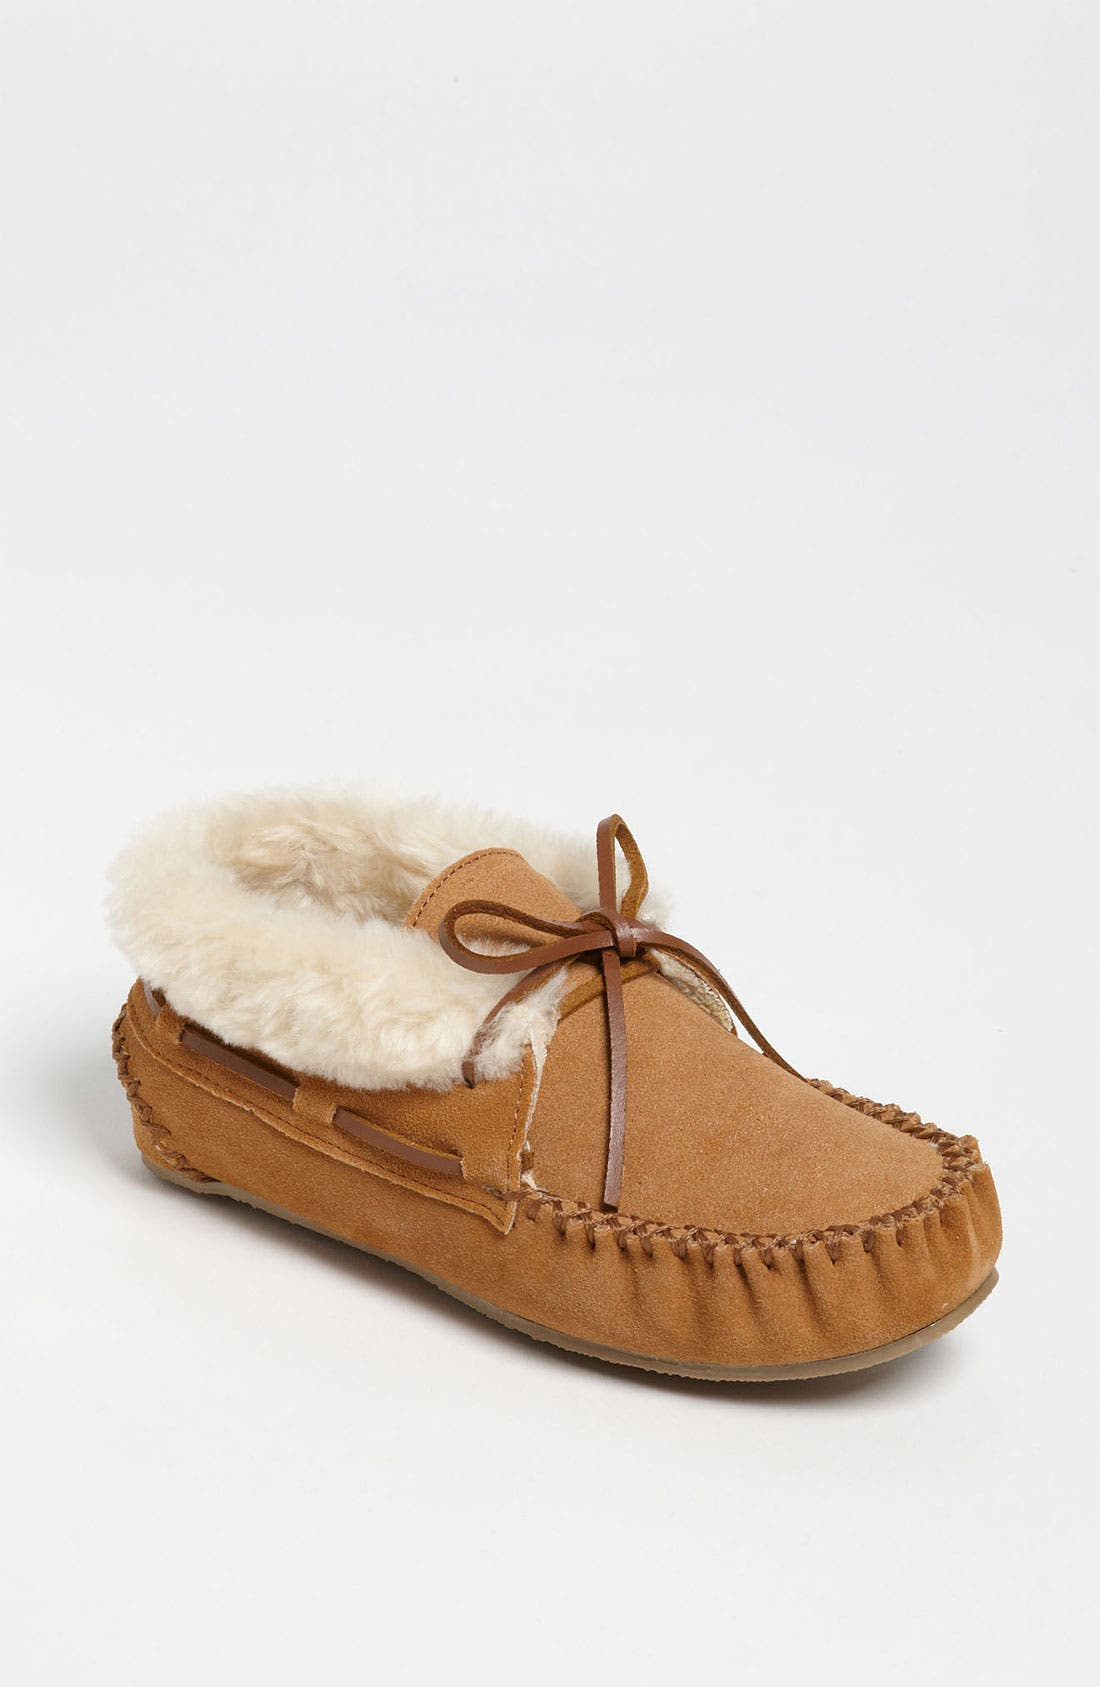 'Chrissy' Slipper Bootie,                             Main thumbnail 1, color,                             CINNAMON SUEDE